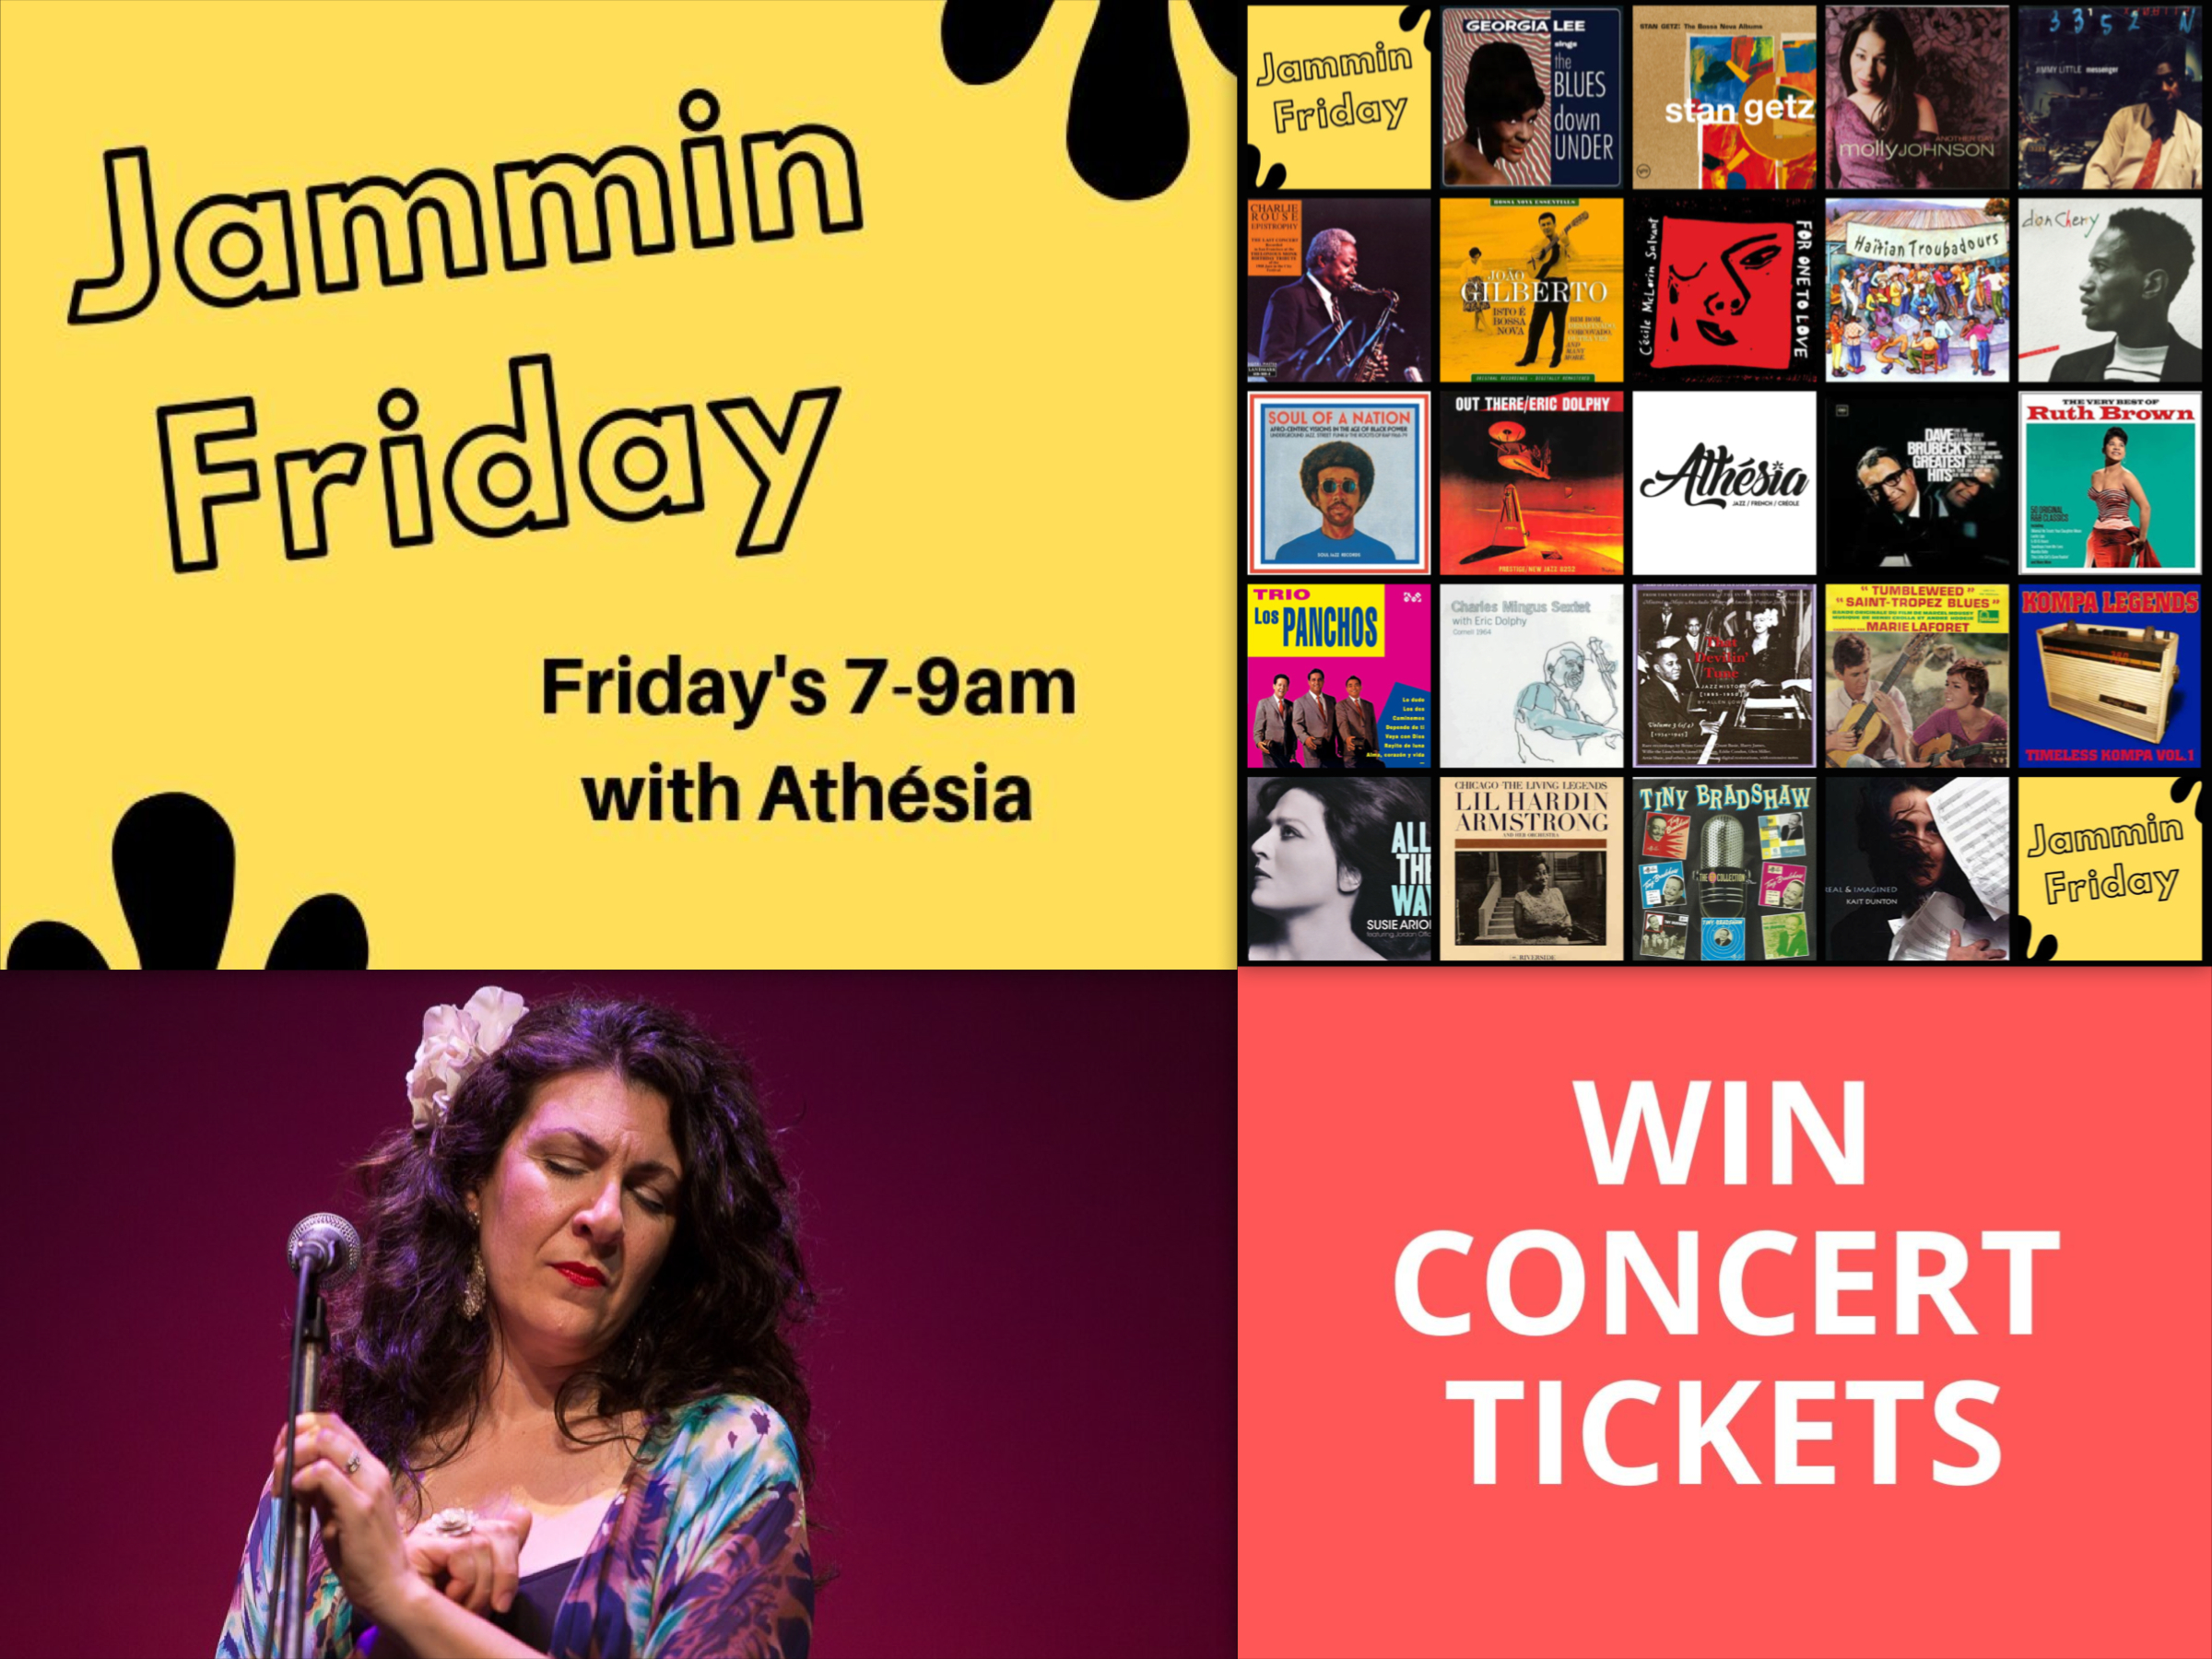 WIN CONCERT TICKETS 12 july Jammin with Athesia on Eastside